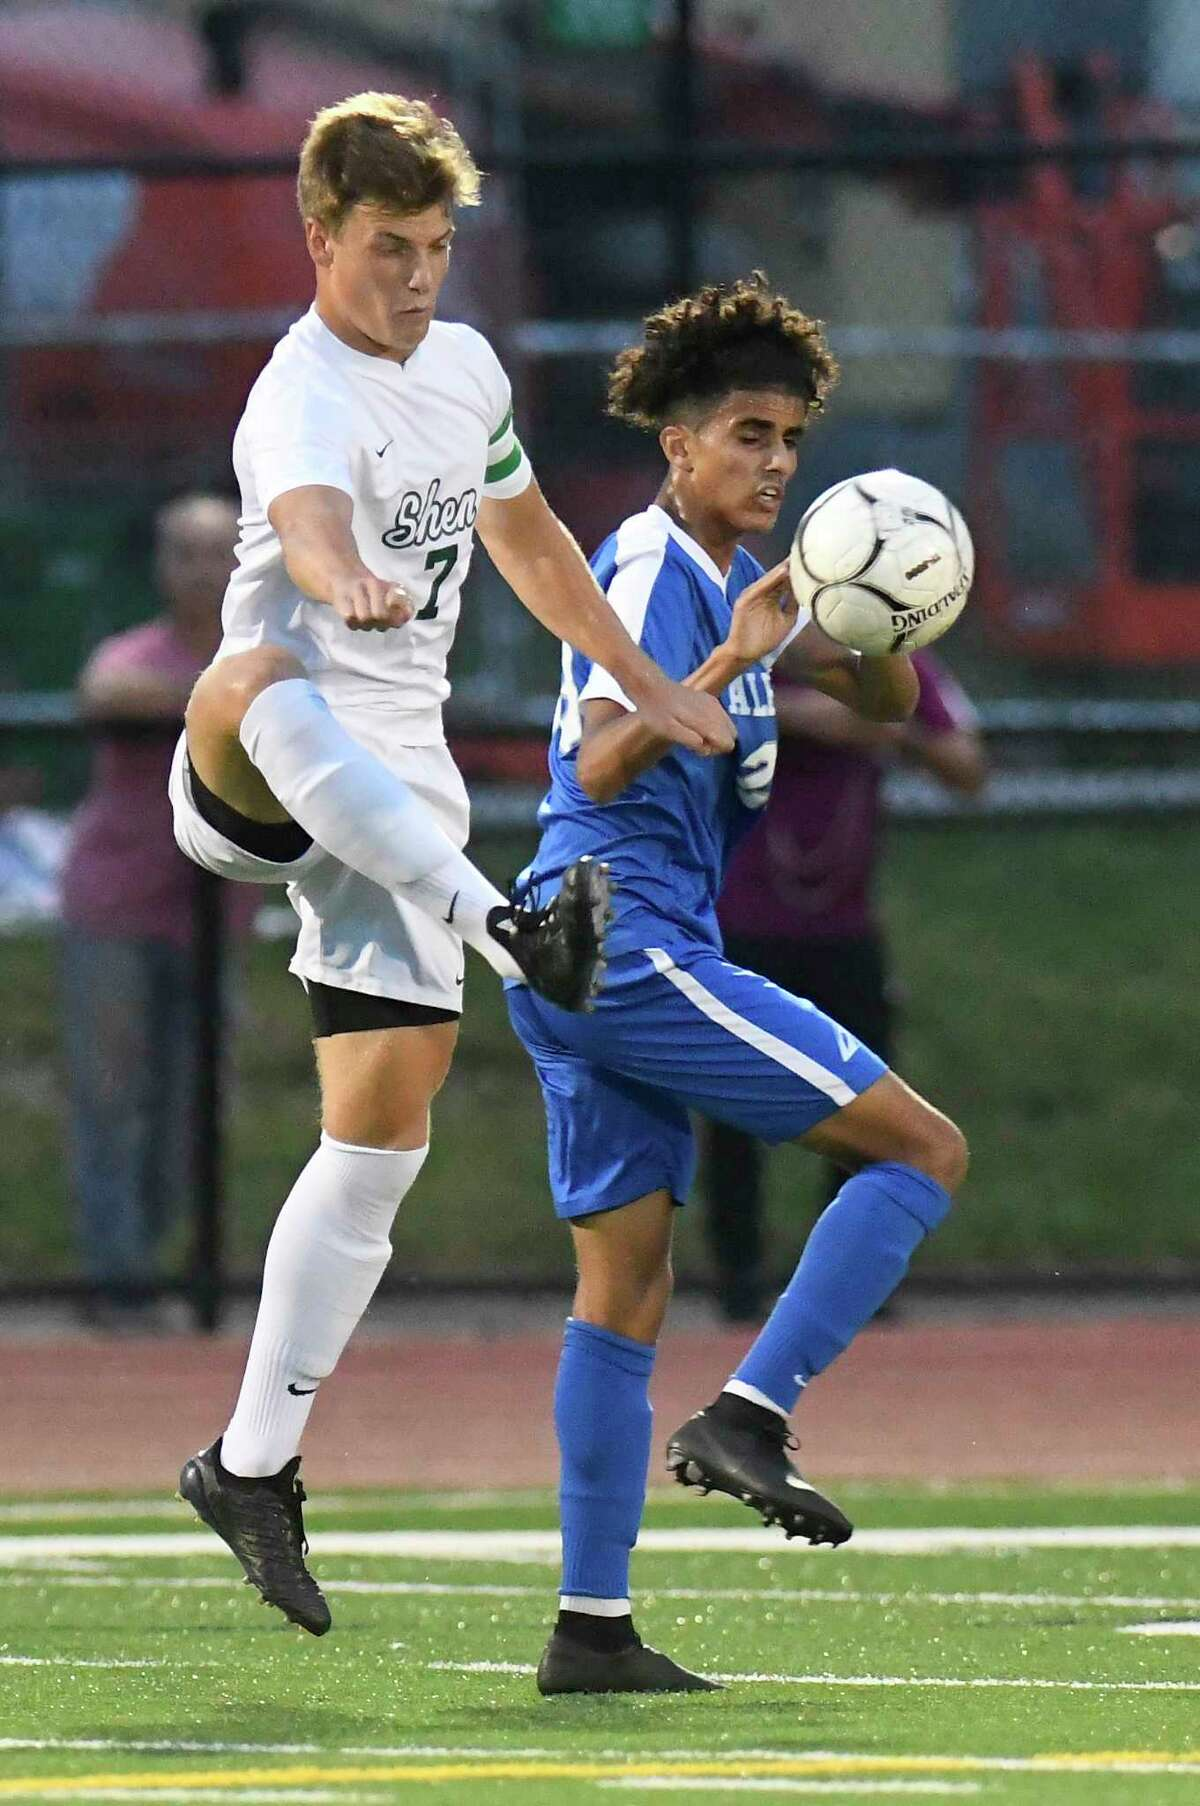 Shendehowa's Eric Makhatadze (7) and Mohammad Yehia (23) chase the ball during a Section II boys soccer game Monday, Sept. 17, 2018, in Albany, N.Y. (Hans Pennink / Special to the Times Union)